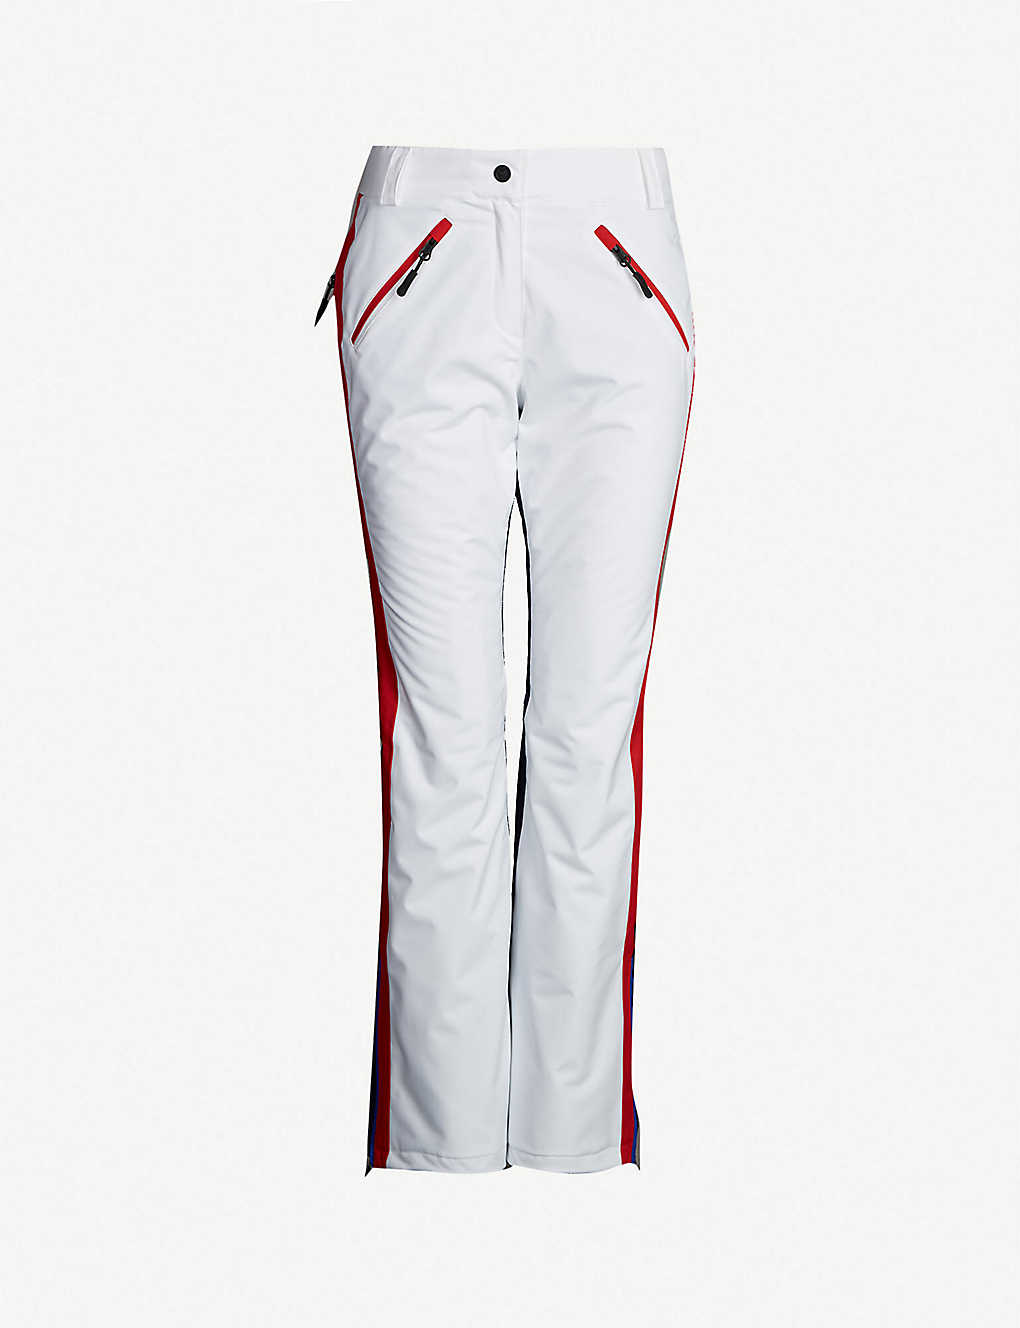 77e996d3 ... Tommy Hilfiger x Rossignol Striking shell ski trousers zoom ...